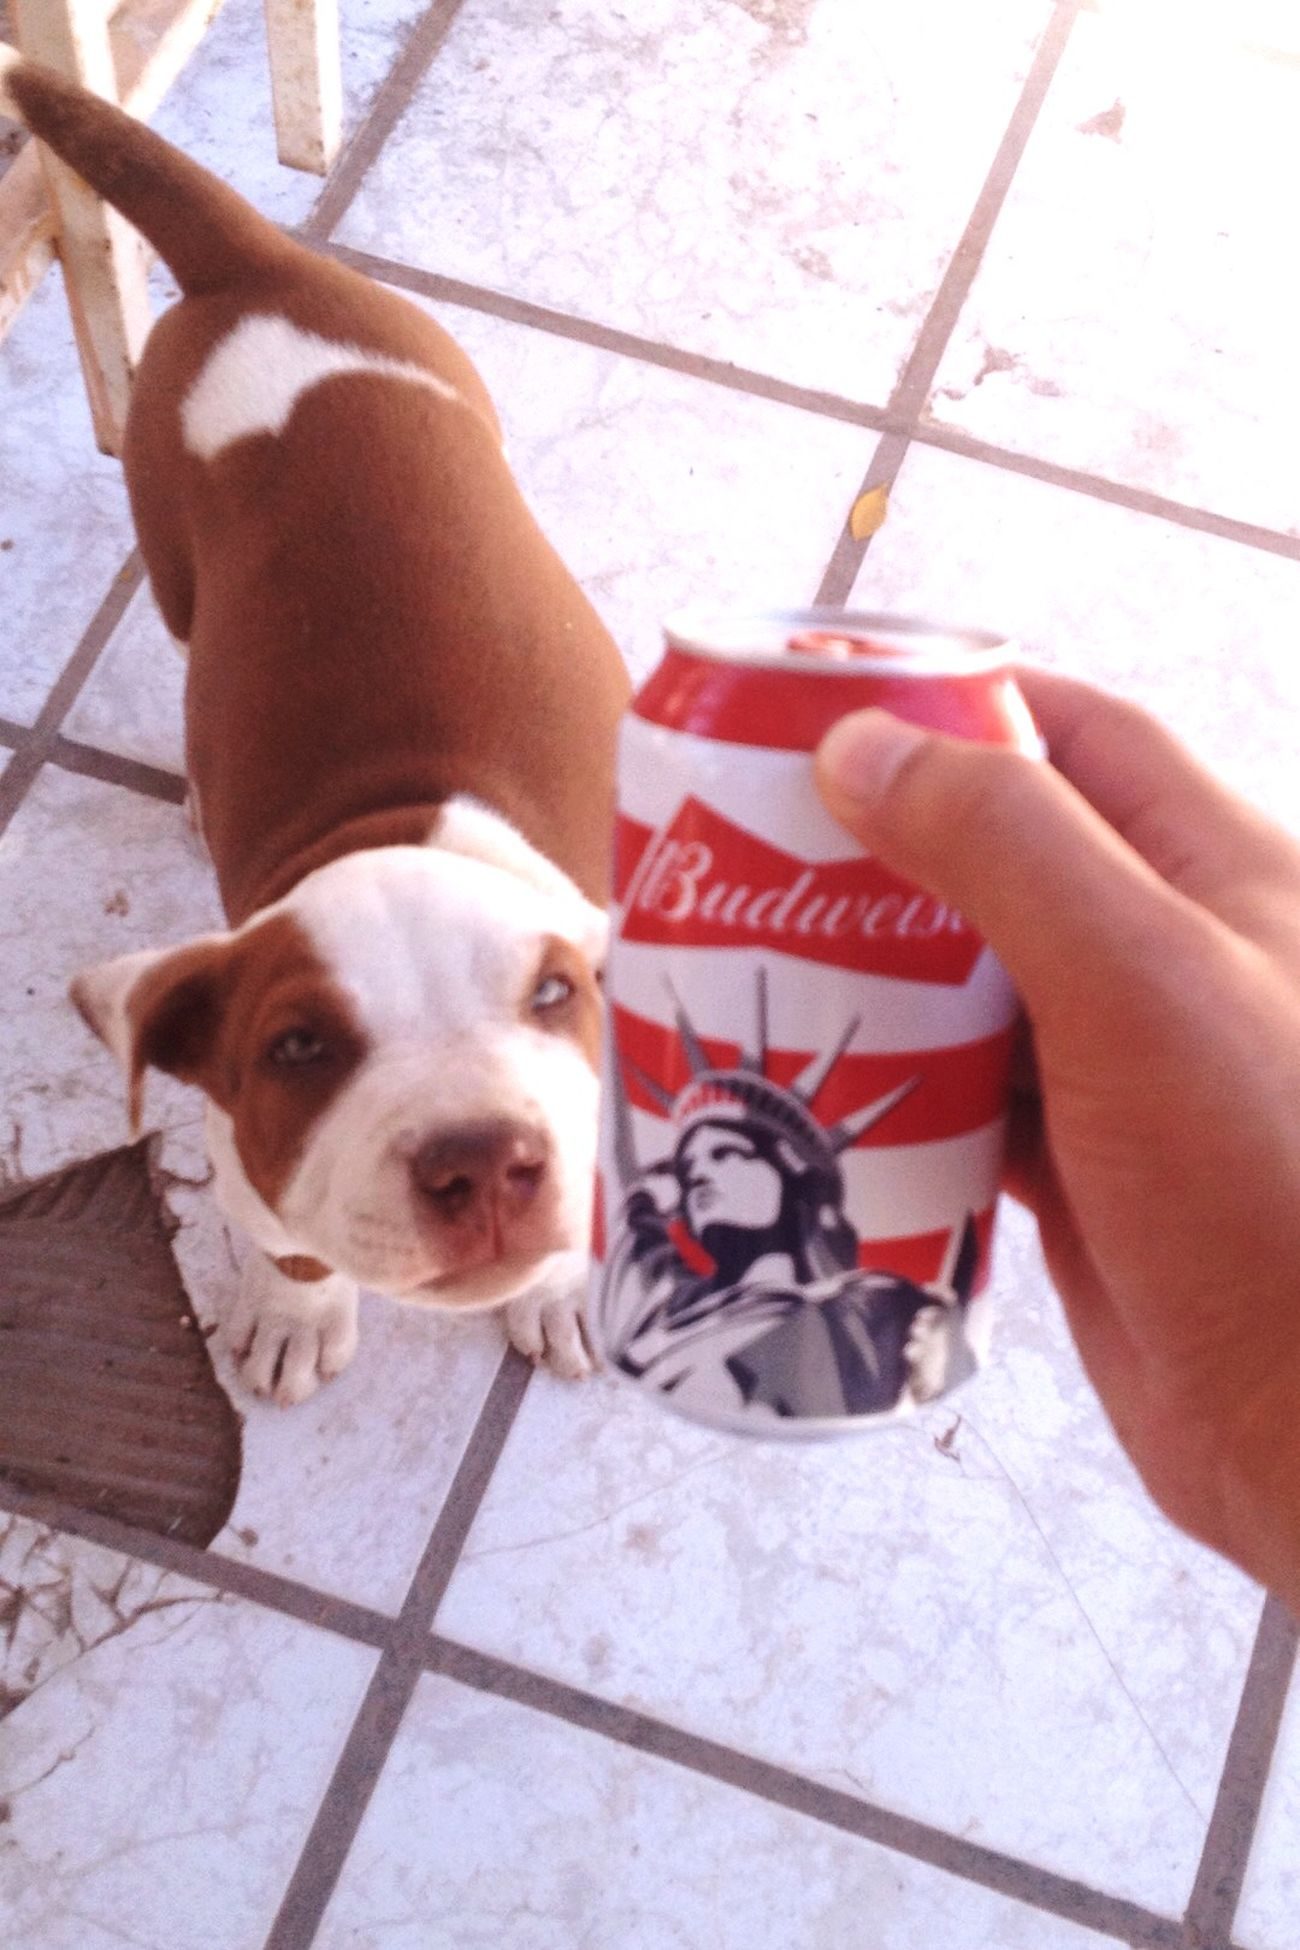 Budweiser Judas Jr Championsleague Cute Dog